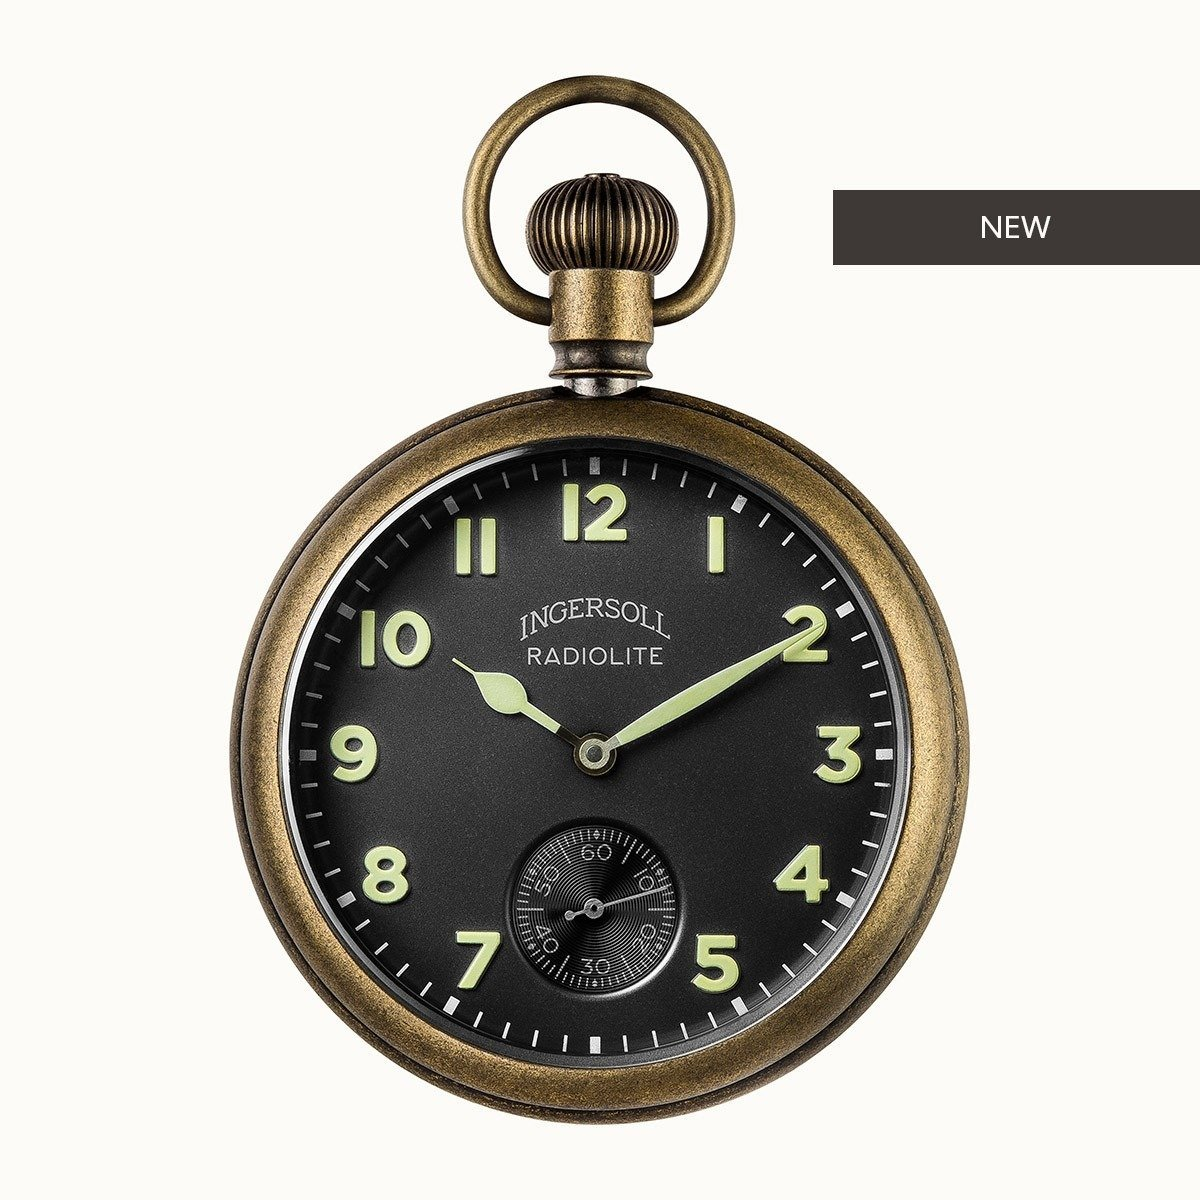 THE TRENTON RADIOLITE POCKET WATCH LIMITED EDITION Penne